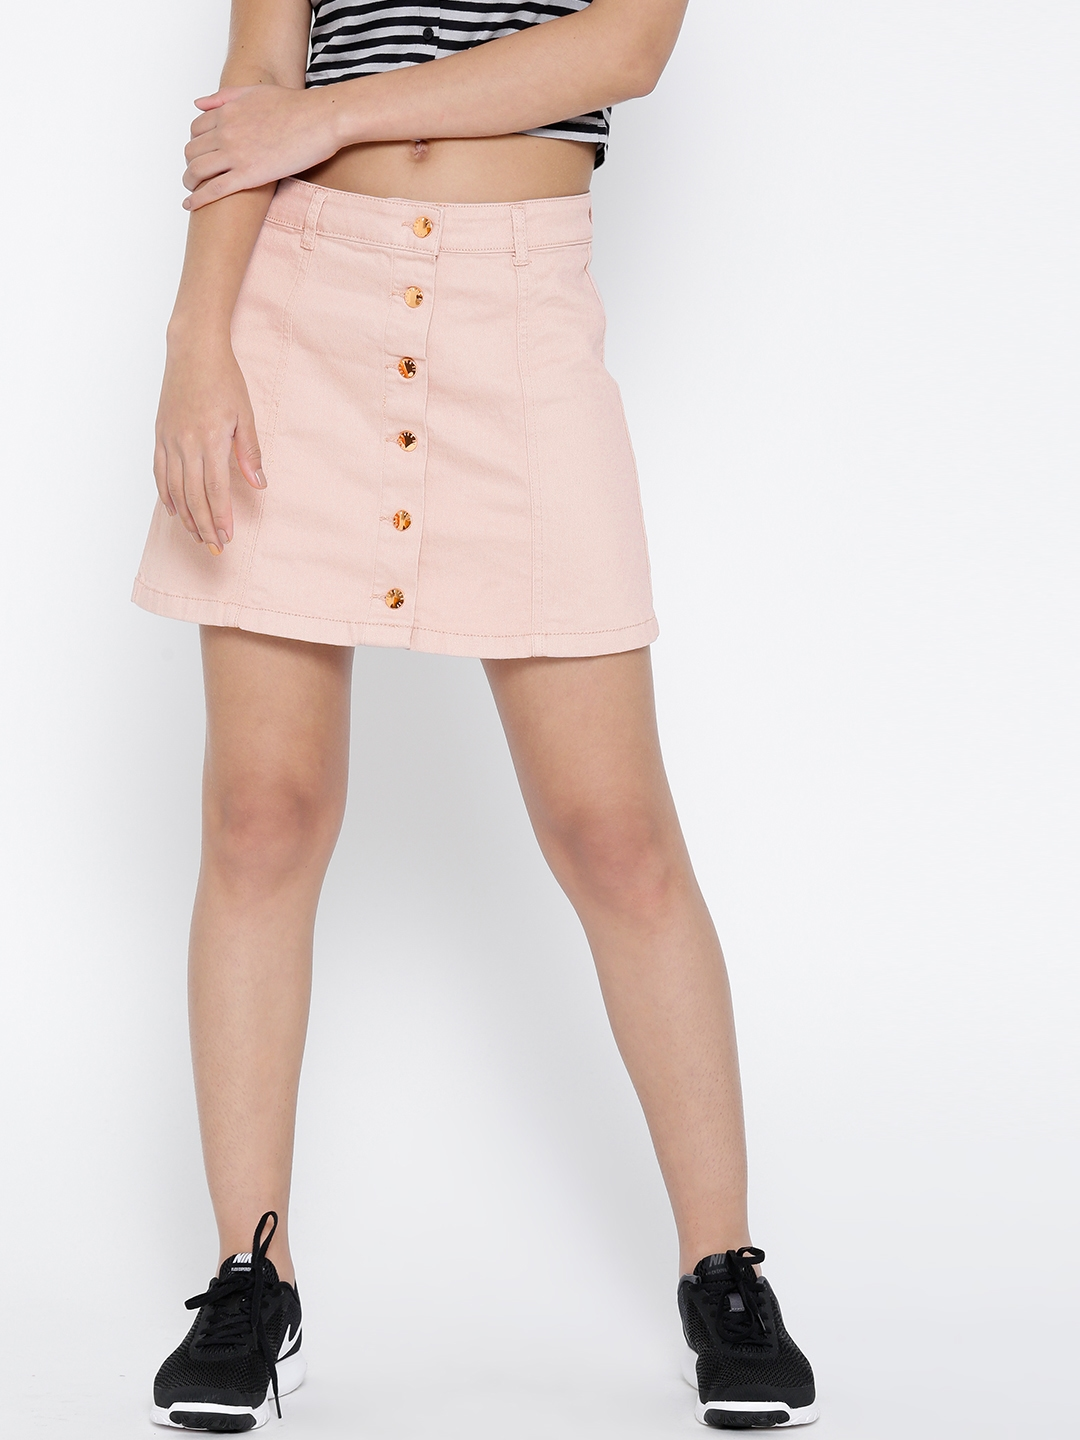 f61c1145db300 Buy FOREVER 21 Pink Denim A Line Skirt - Skirts for Women 1762495 ...